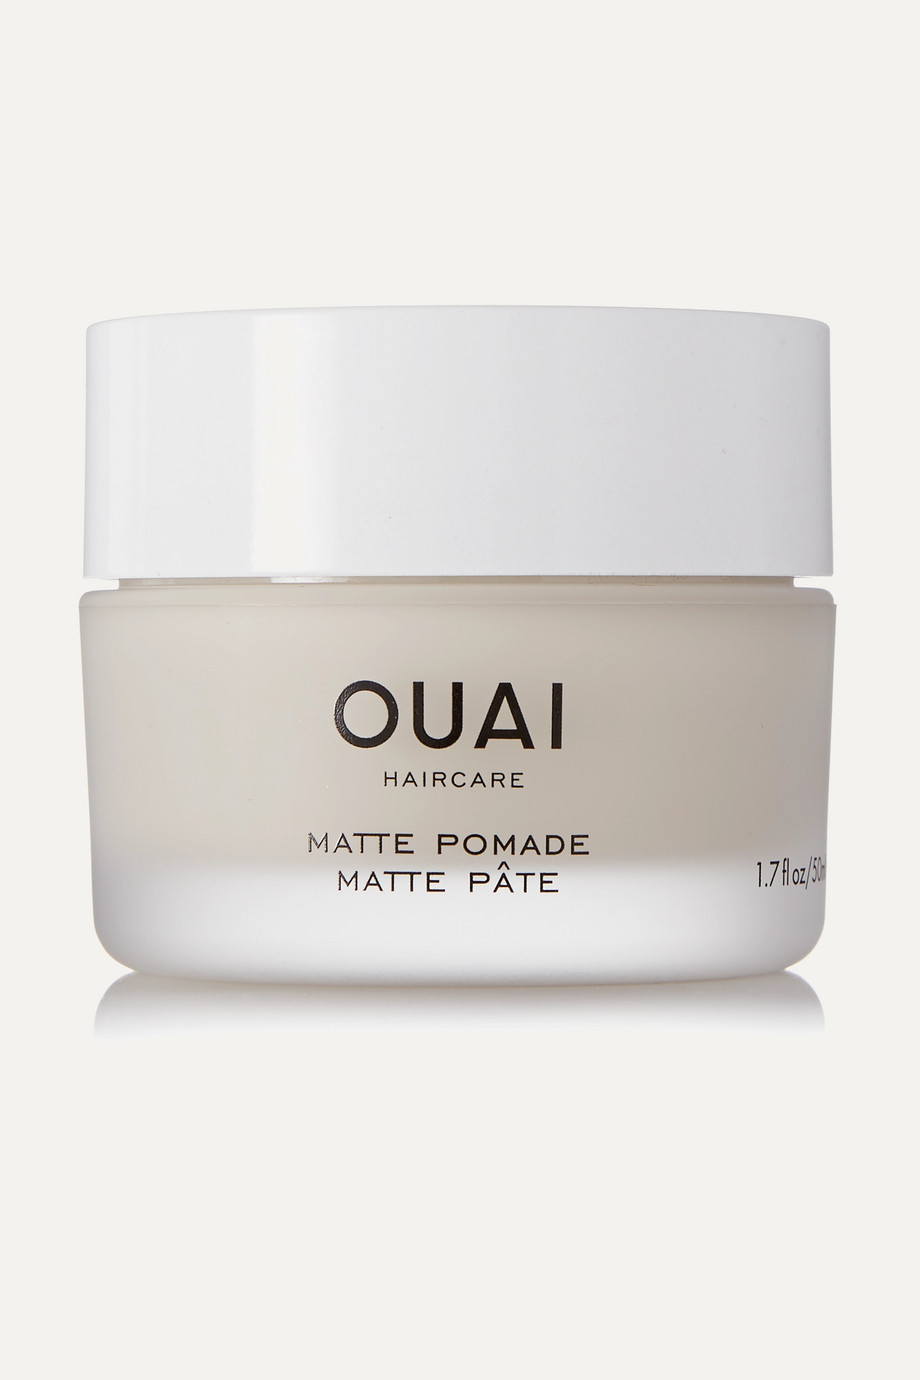 OUAI HAIRCARE Matte Pomade, 50ml